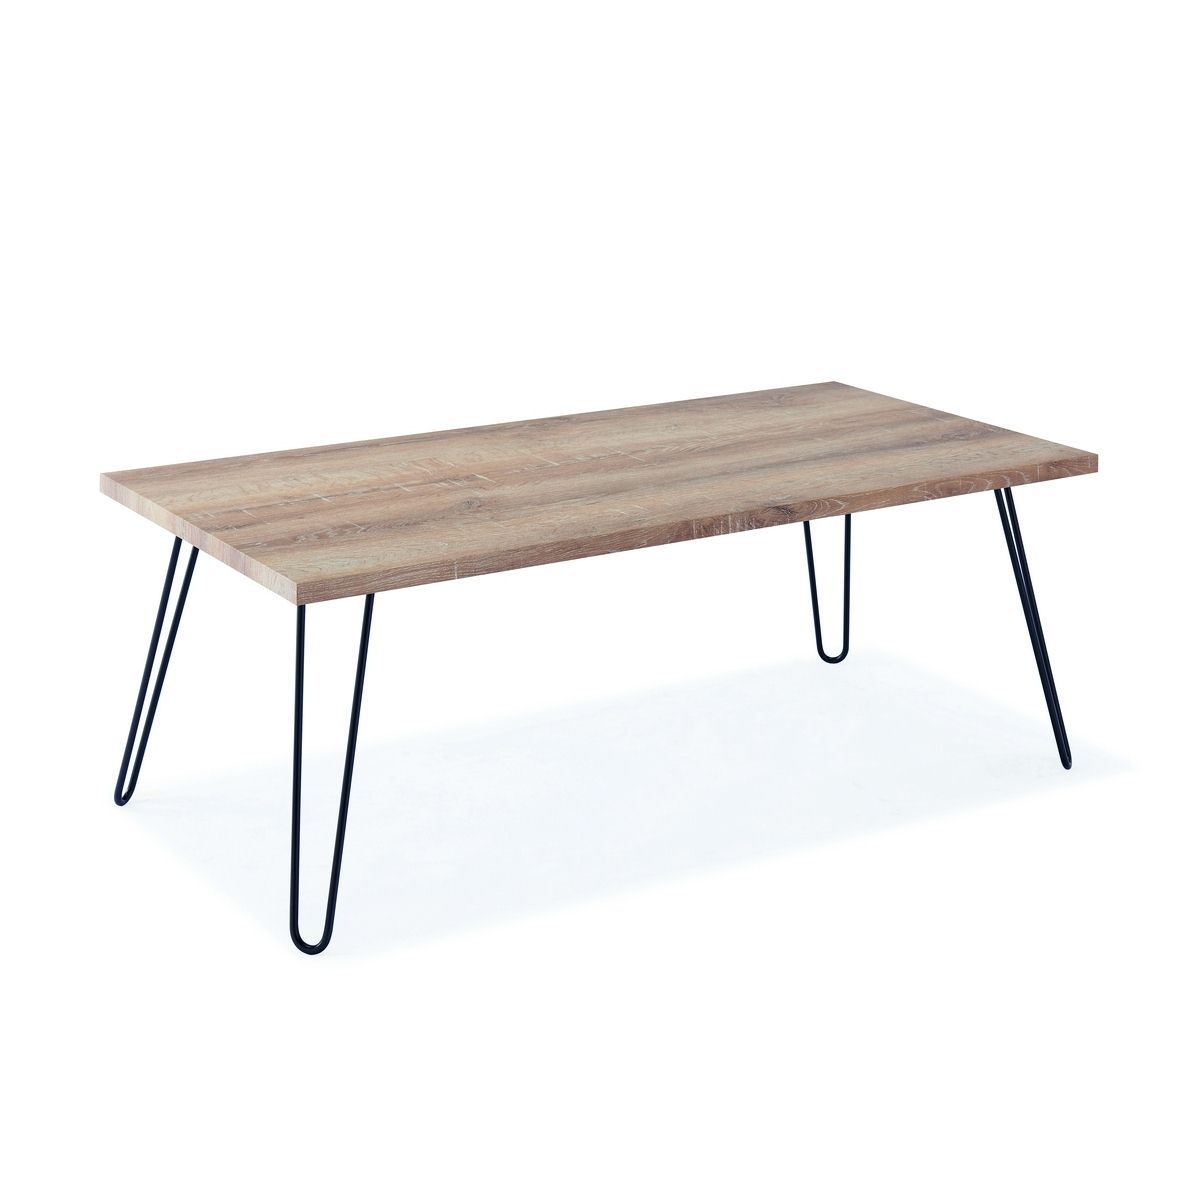 Table basse bois pied metal for Table basse en bois